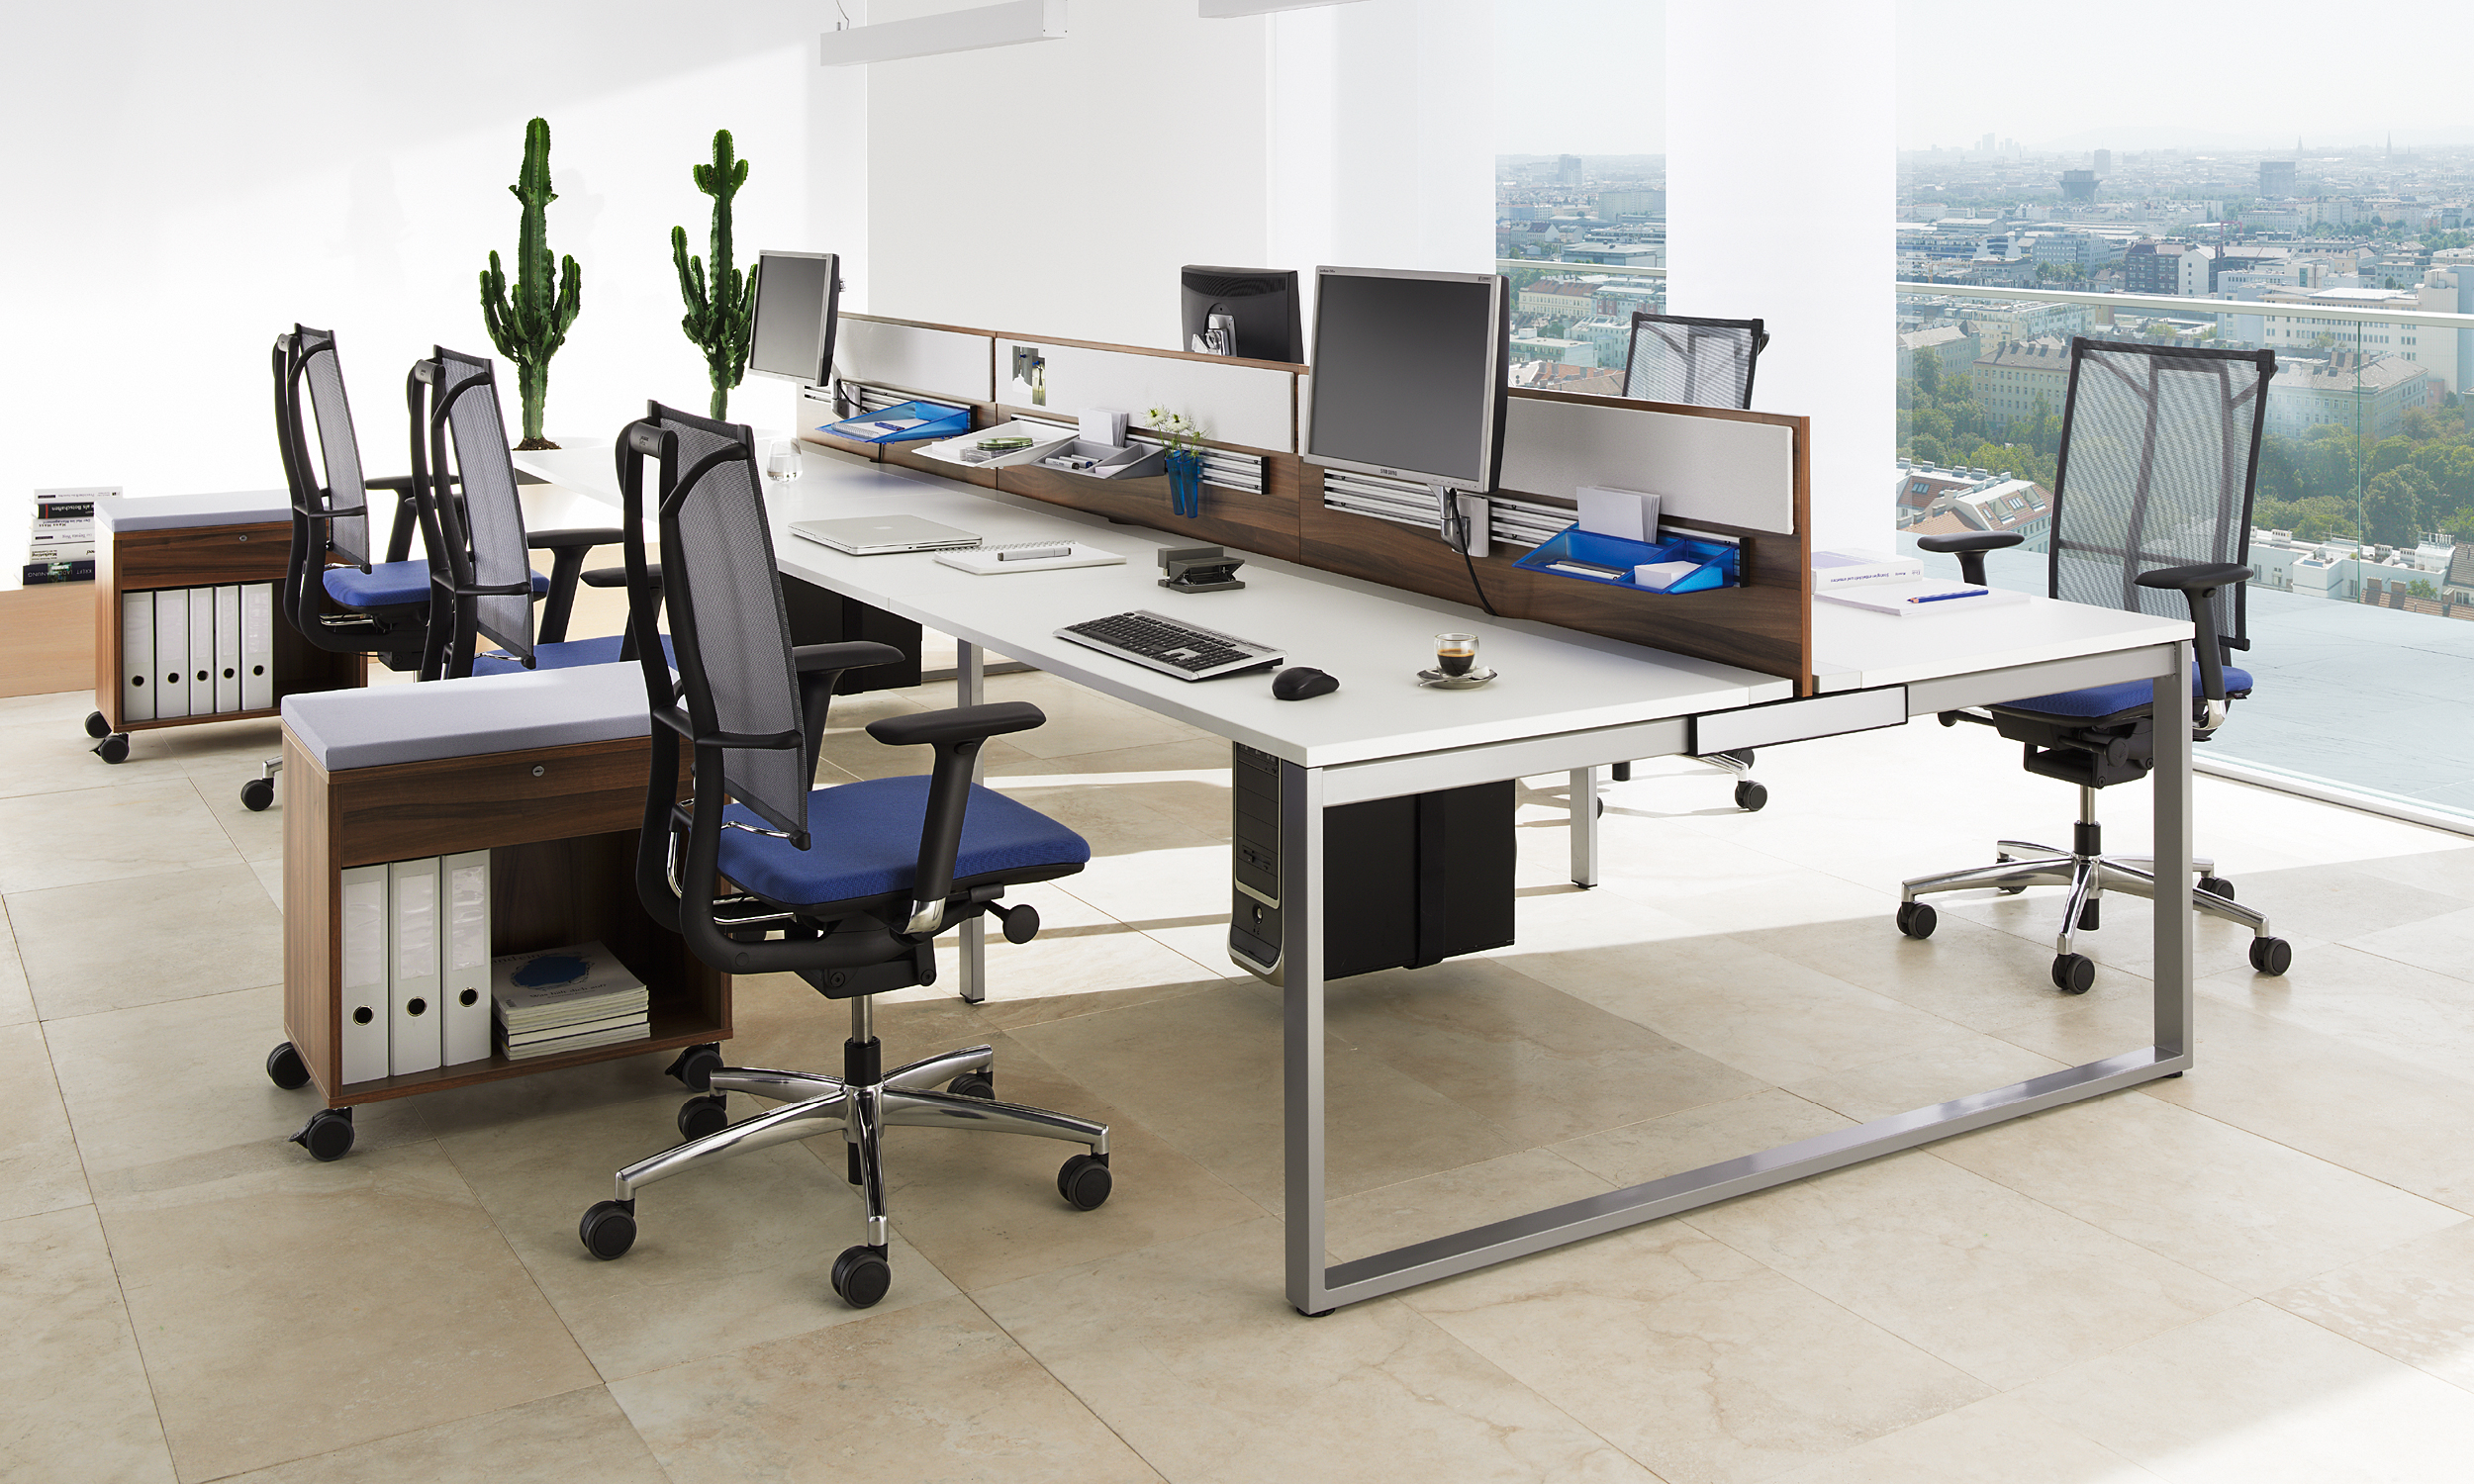 office-furniture_10-6_sqart-22